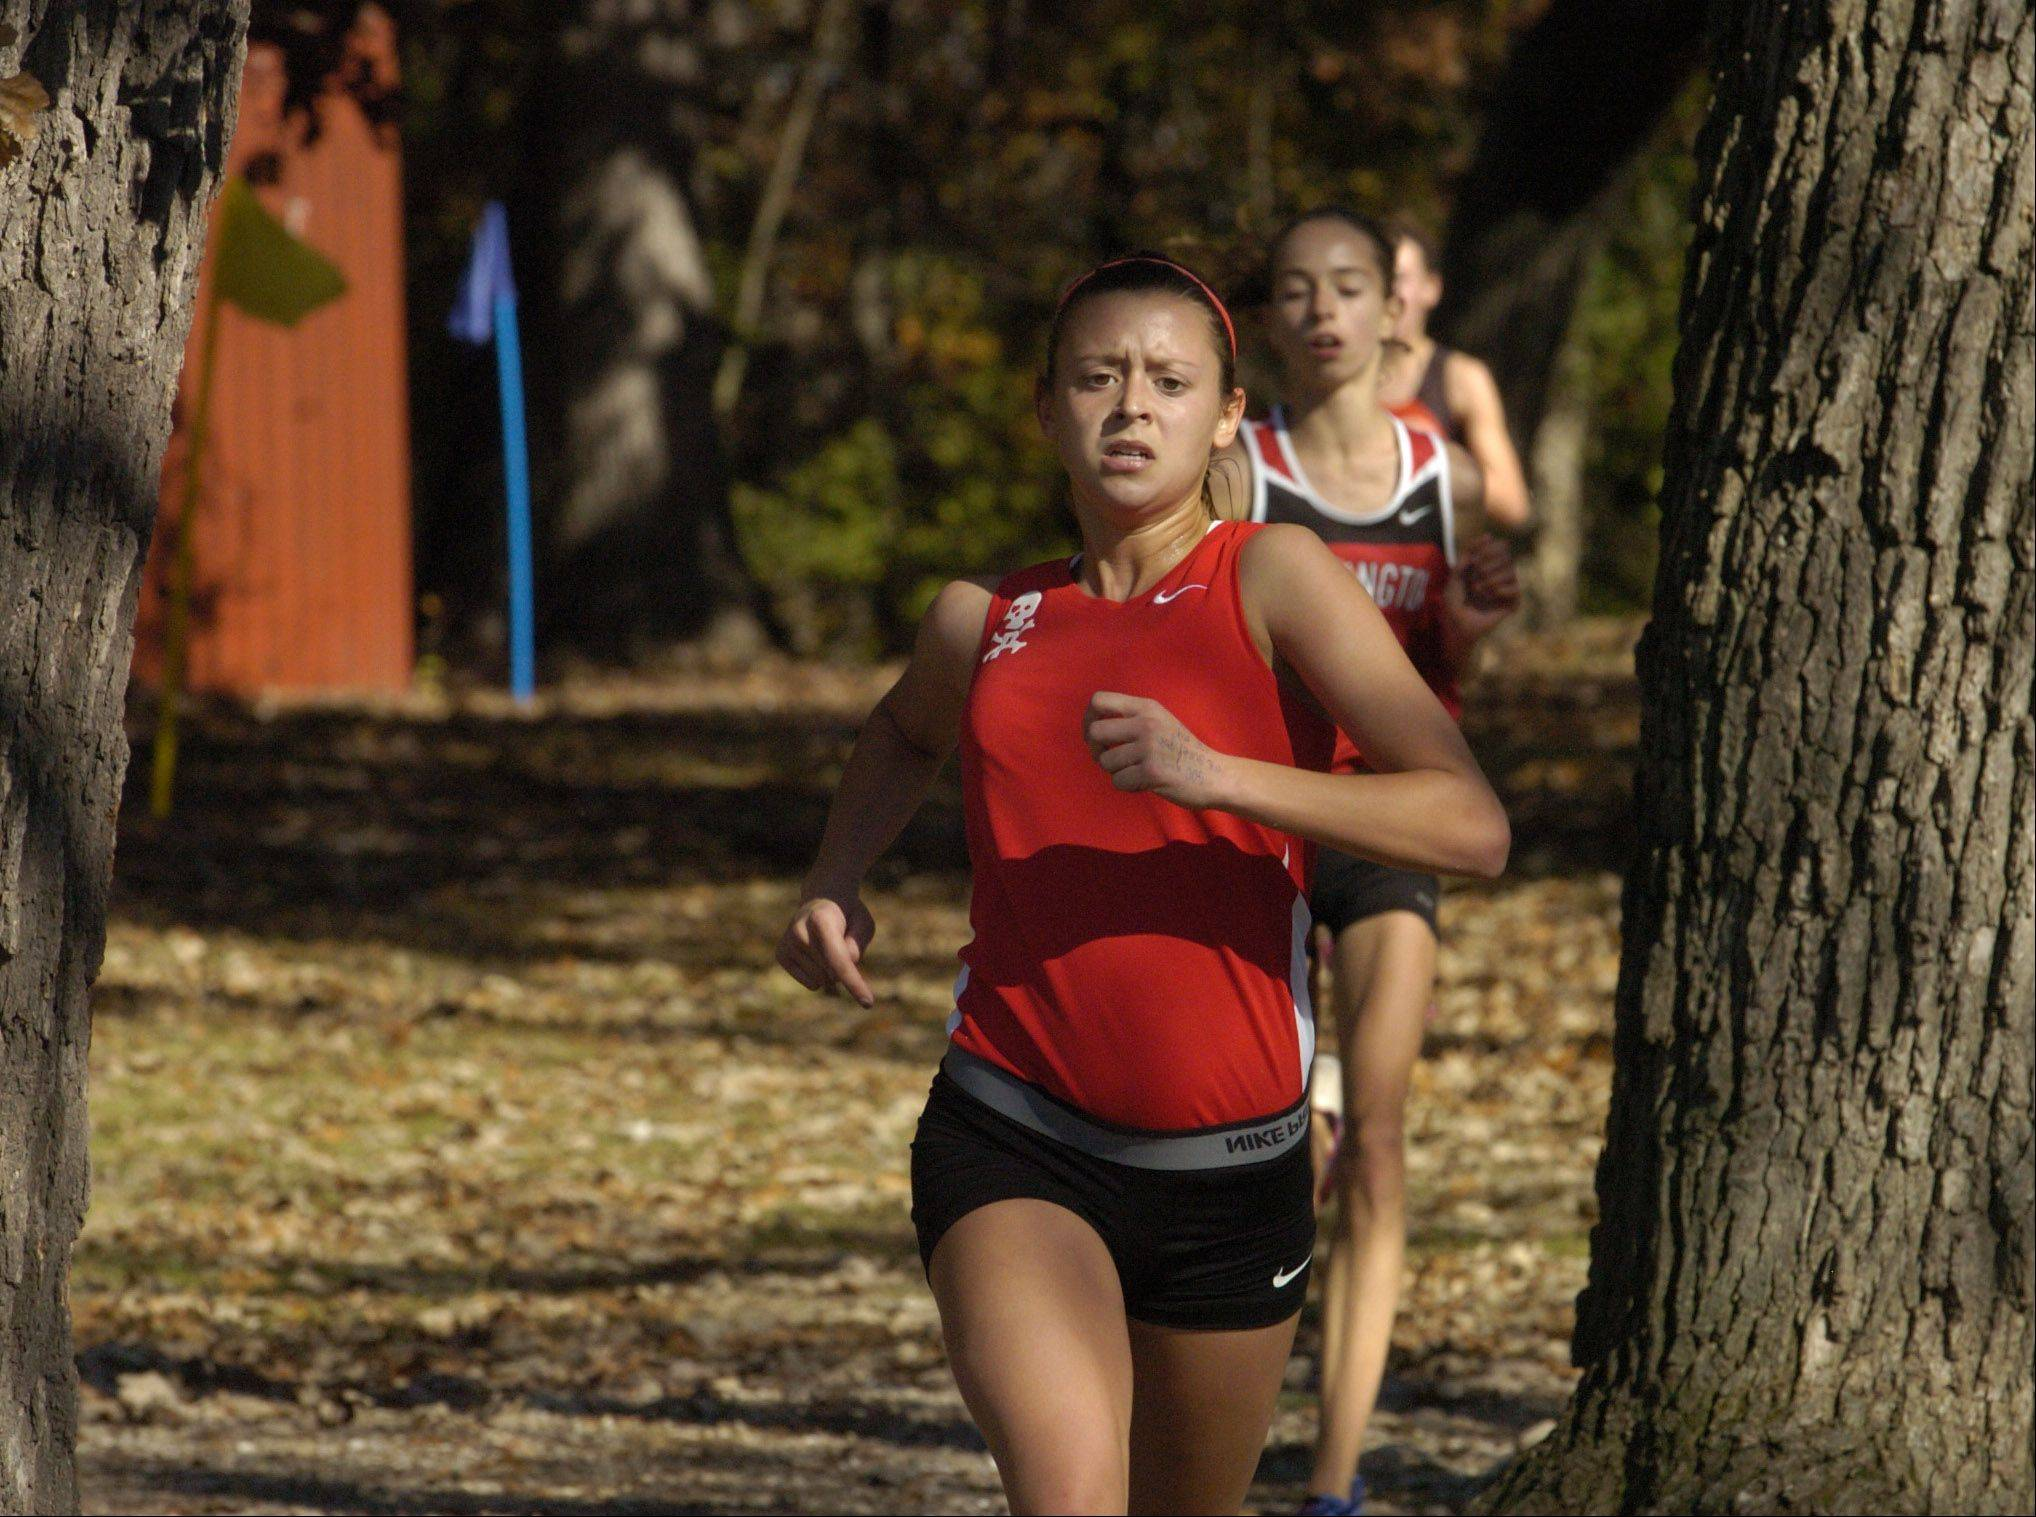 Palatine�s Tess Wasowicz leads Barrington�s Lauren Conroy through the woods during Class 3A Grant cross country regional. Wasowicz and Conroy finished 1-2.